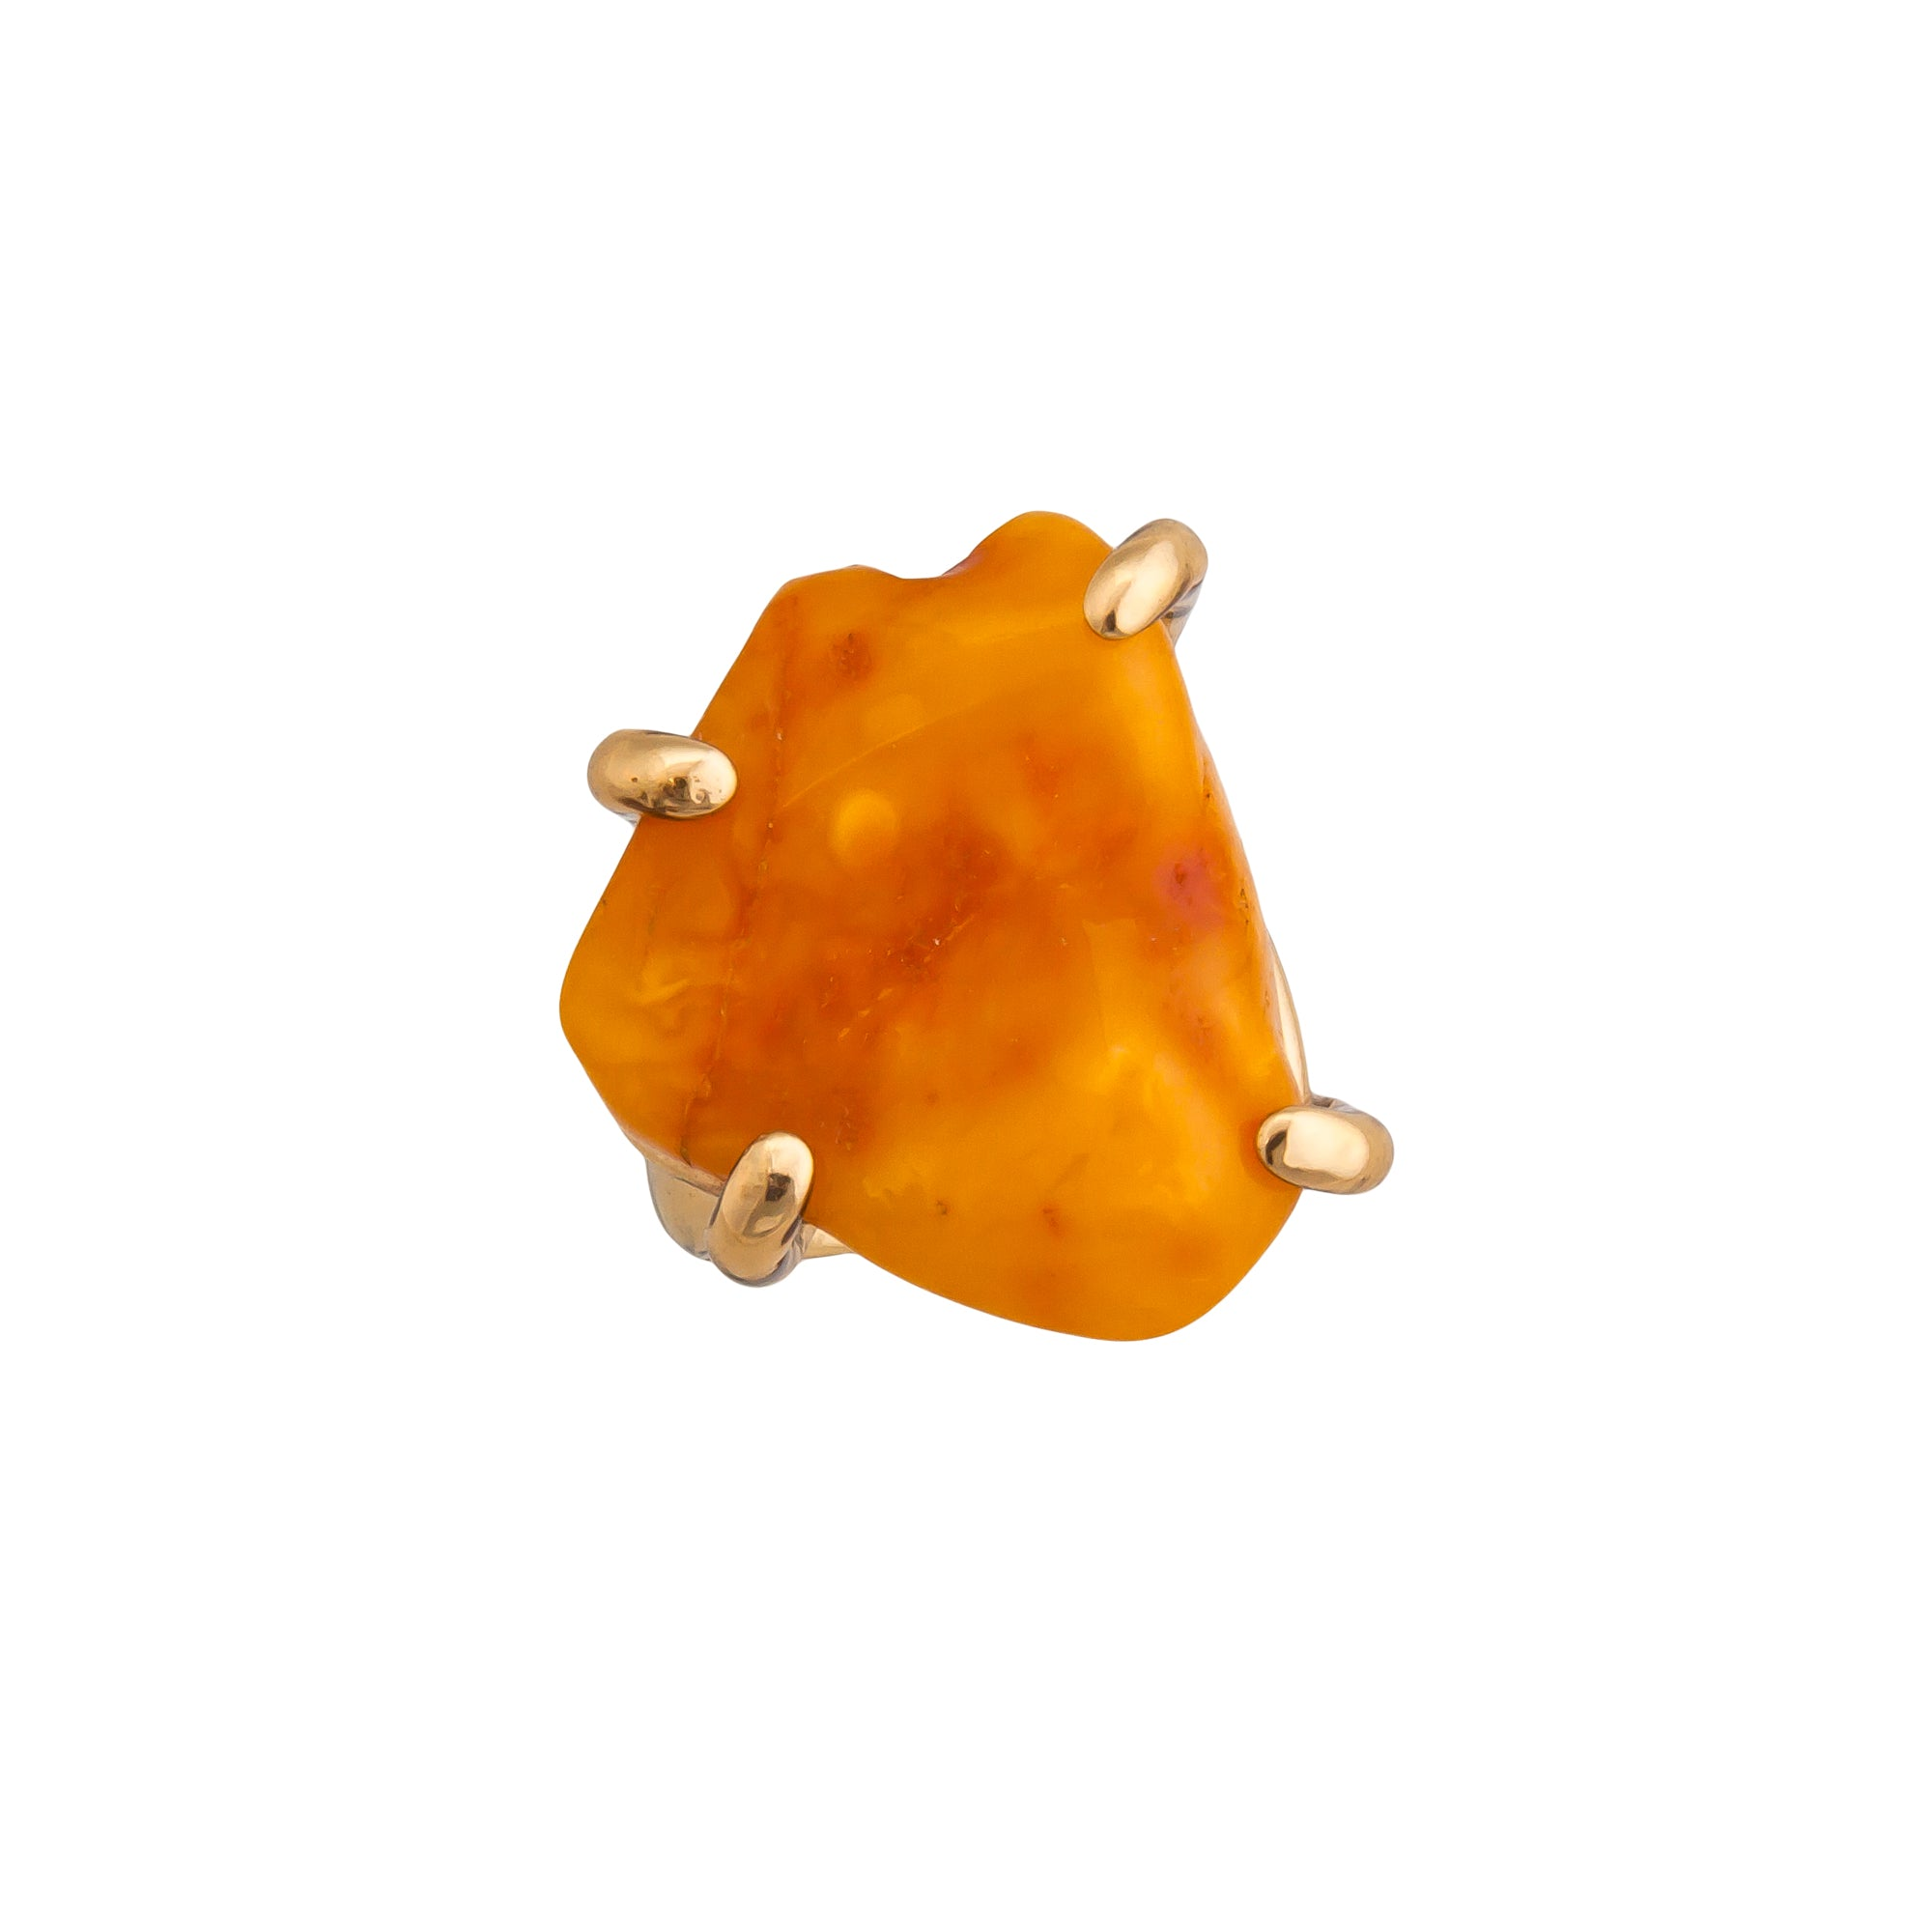 Alchemia Amber Prong Set Adjustable Ring | Charles Albert Jewelry